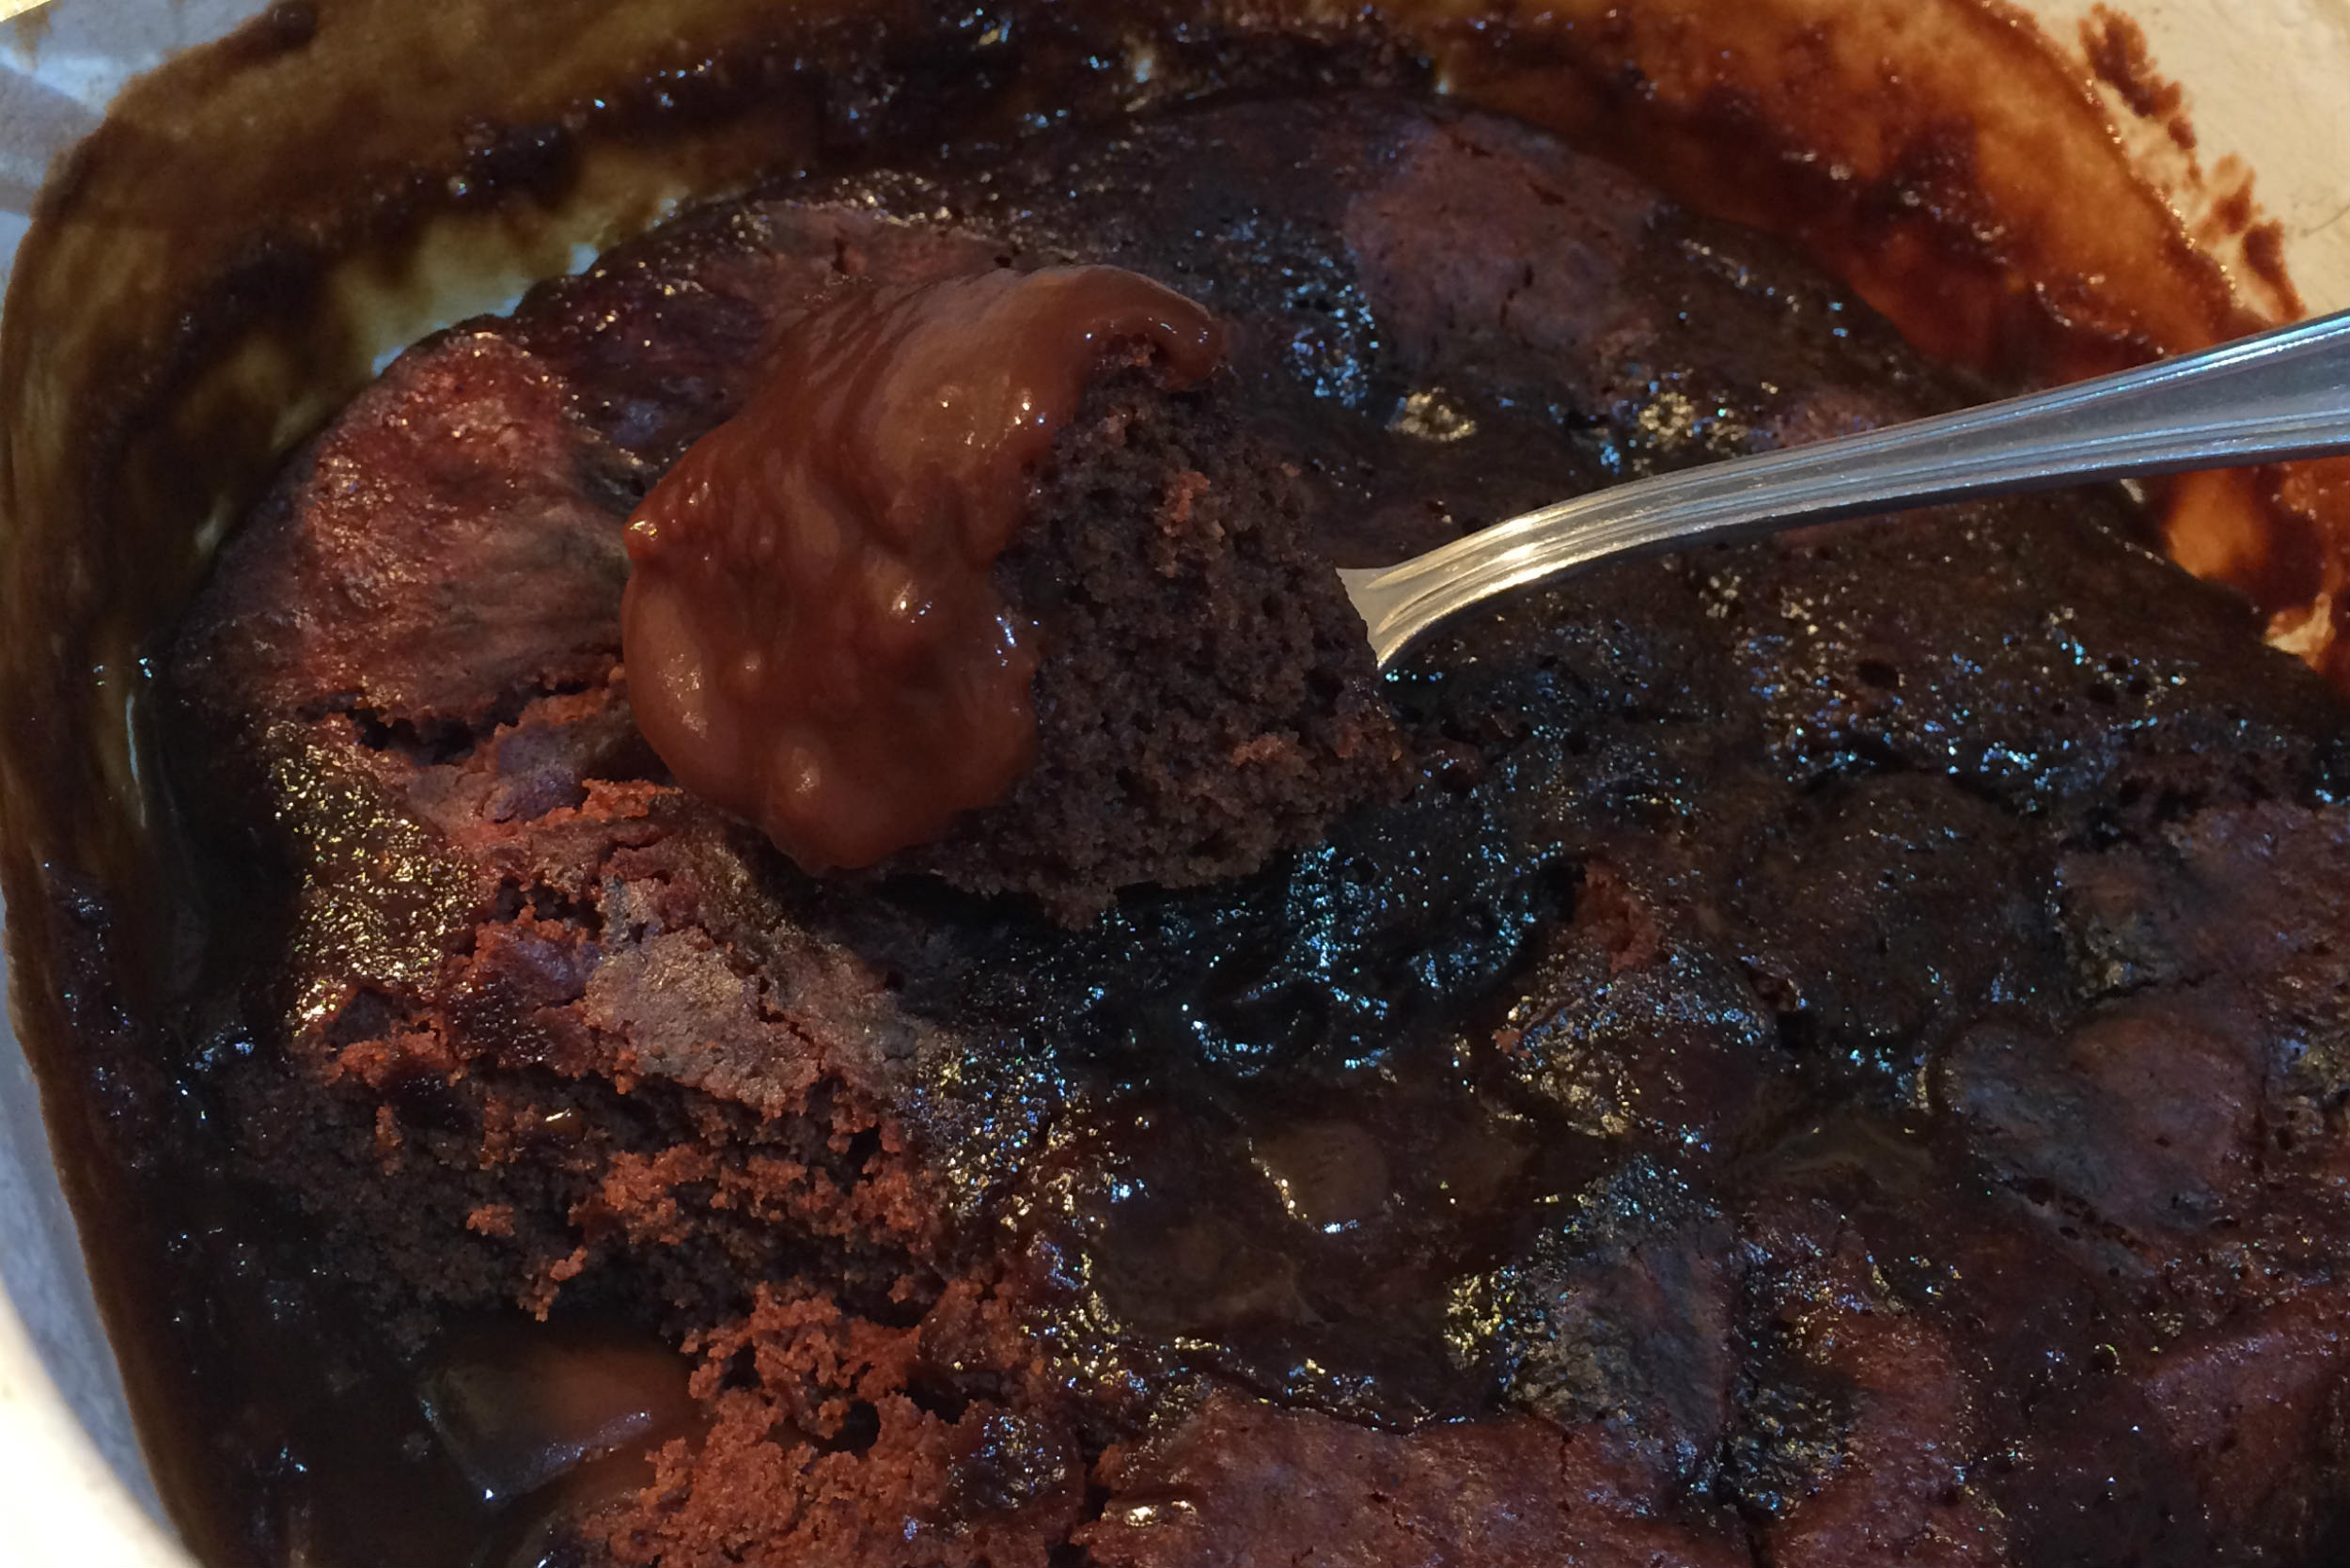 chocolate self-saucing pudding in oven dish with metal spoon